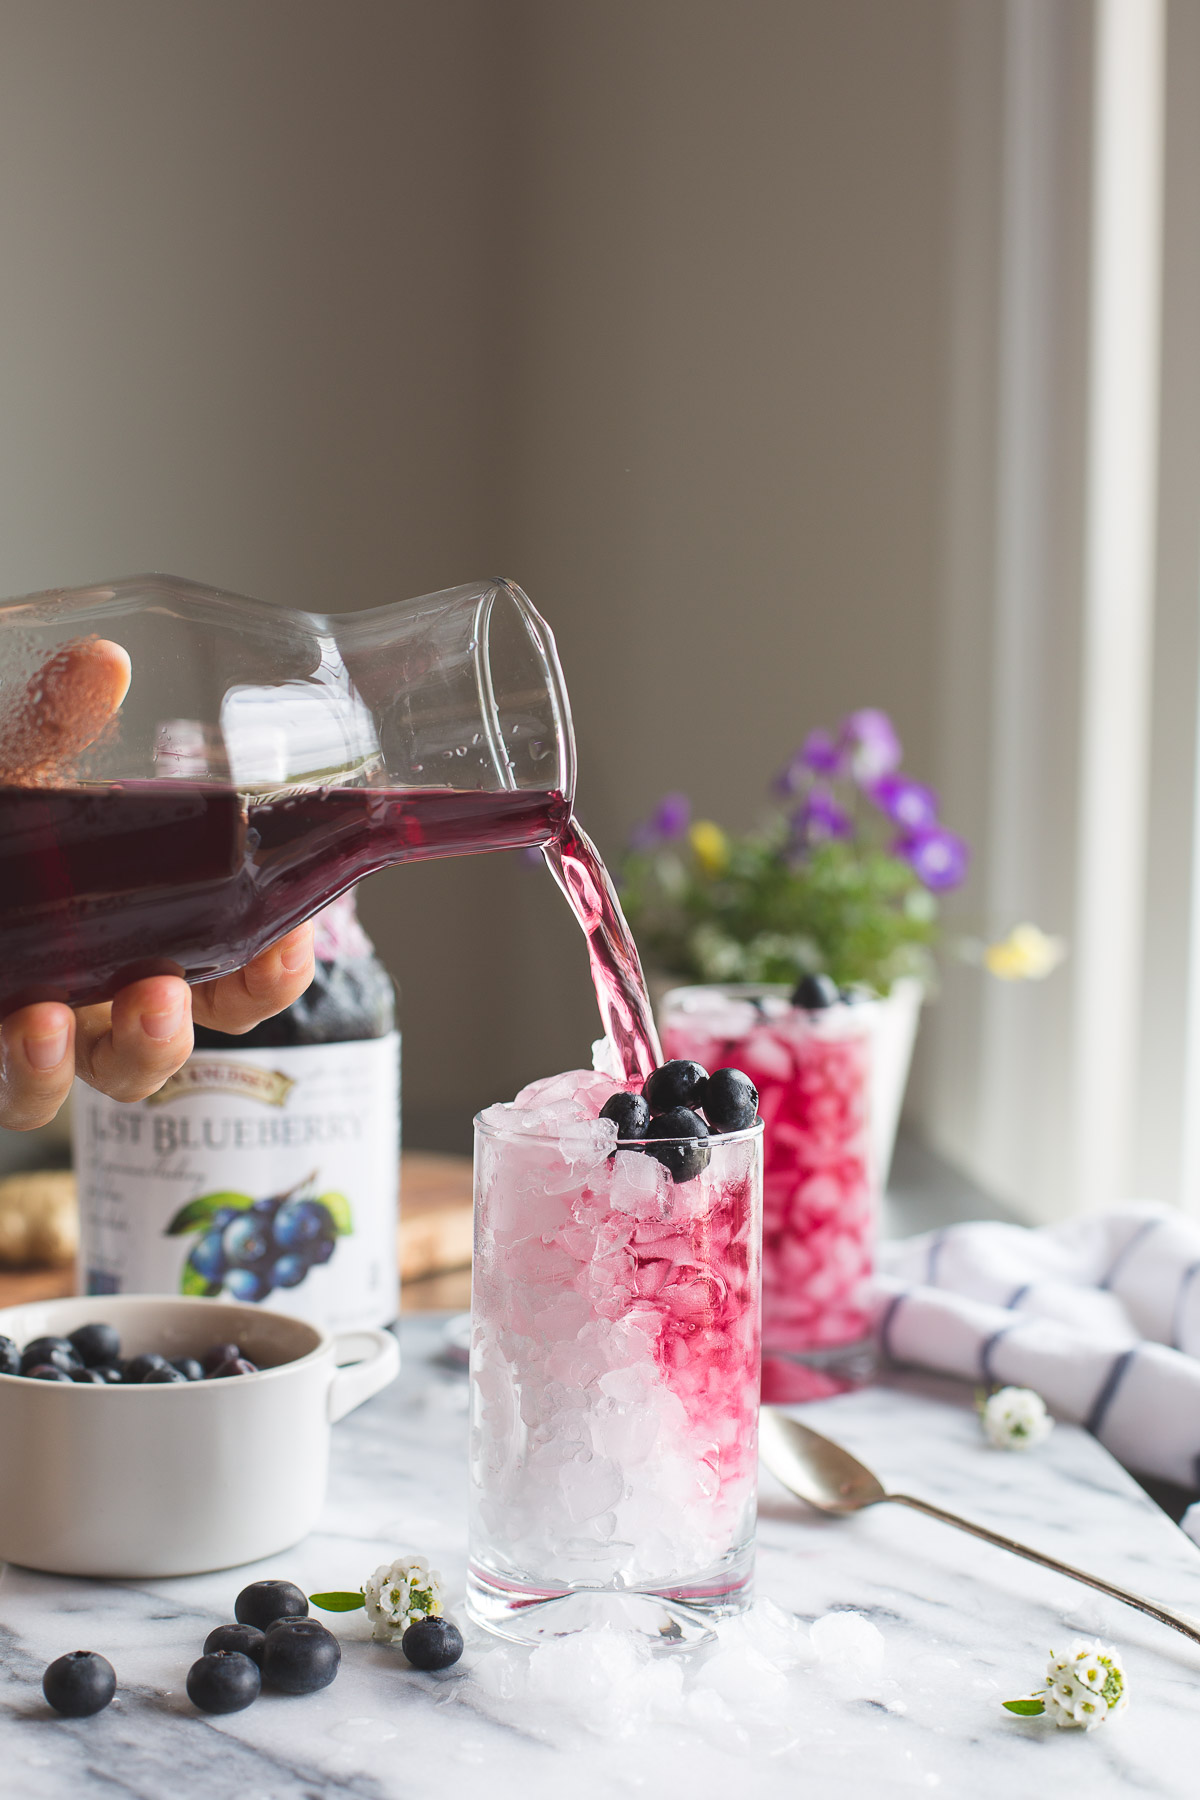 This Blueberry Switchel, or Haymaker's Punch is a fresh twist on an old time farmer's recipe. Do away with artificial sports or energy drinks and enjoy this natural thirst quenching drink. Vegan | Gluten Free | No Refined Sugar | @tasteLUVnourish